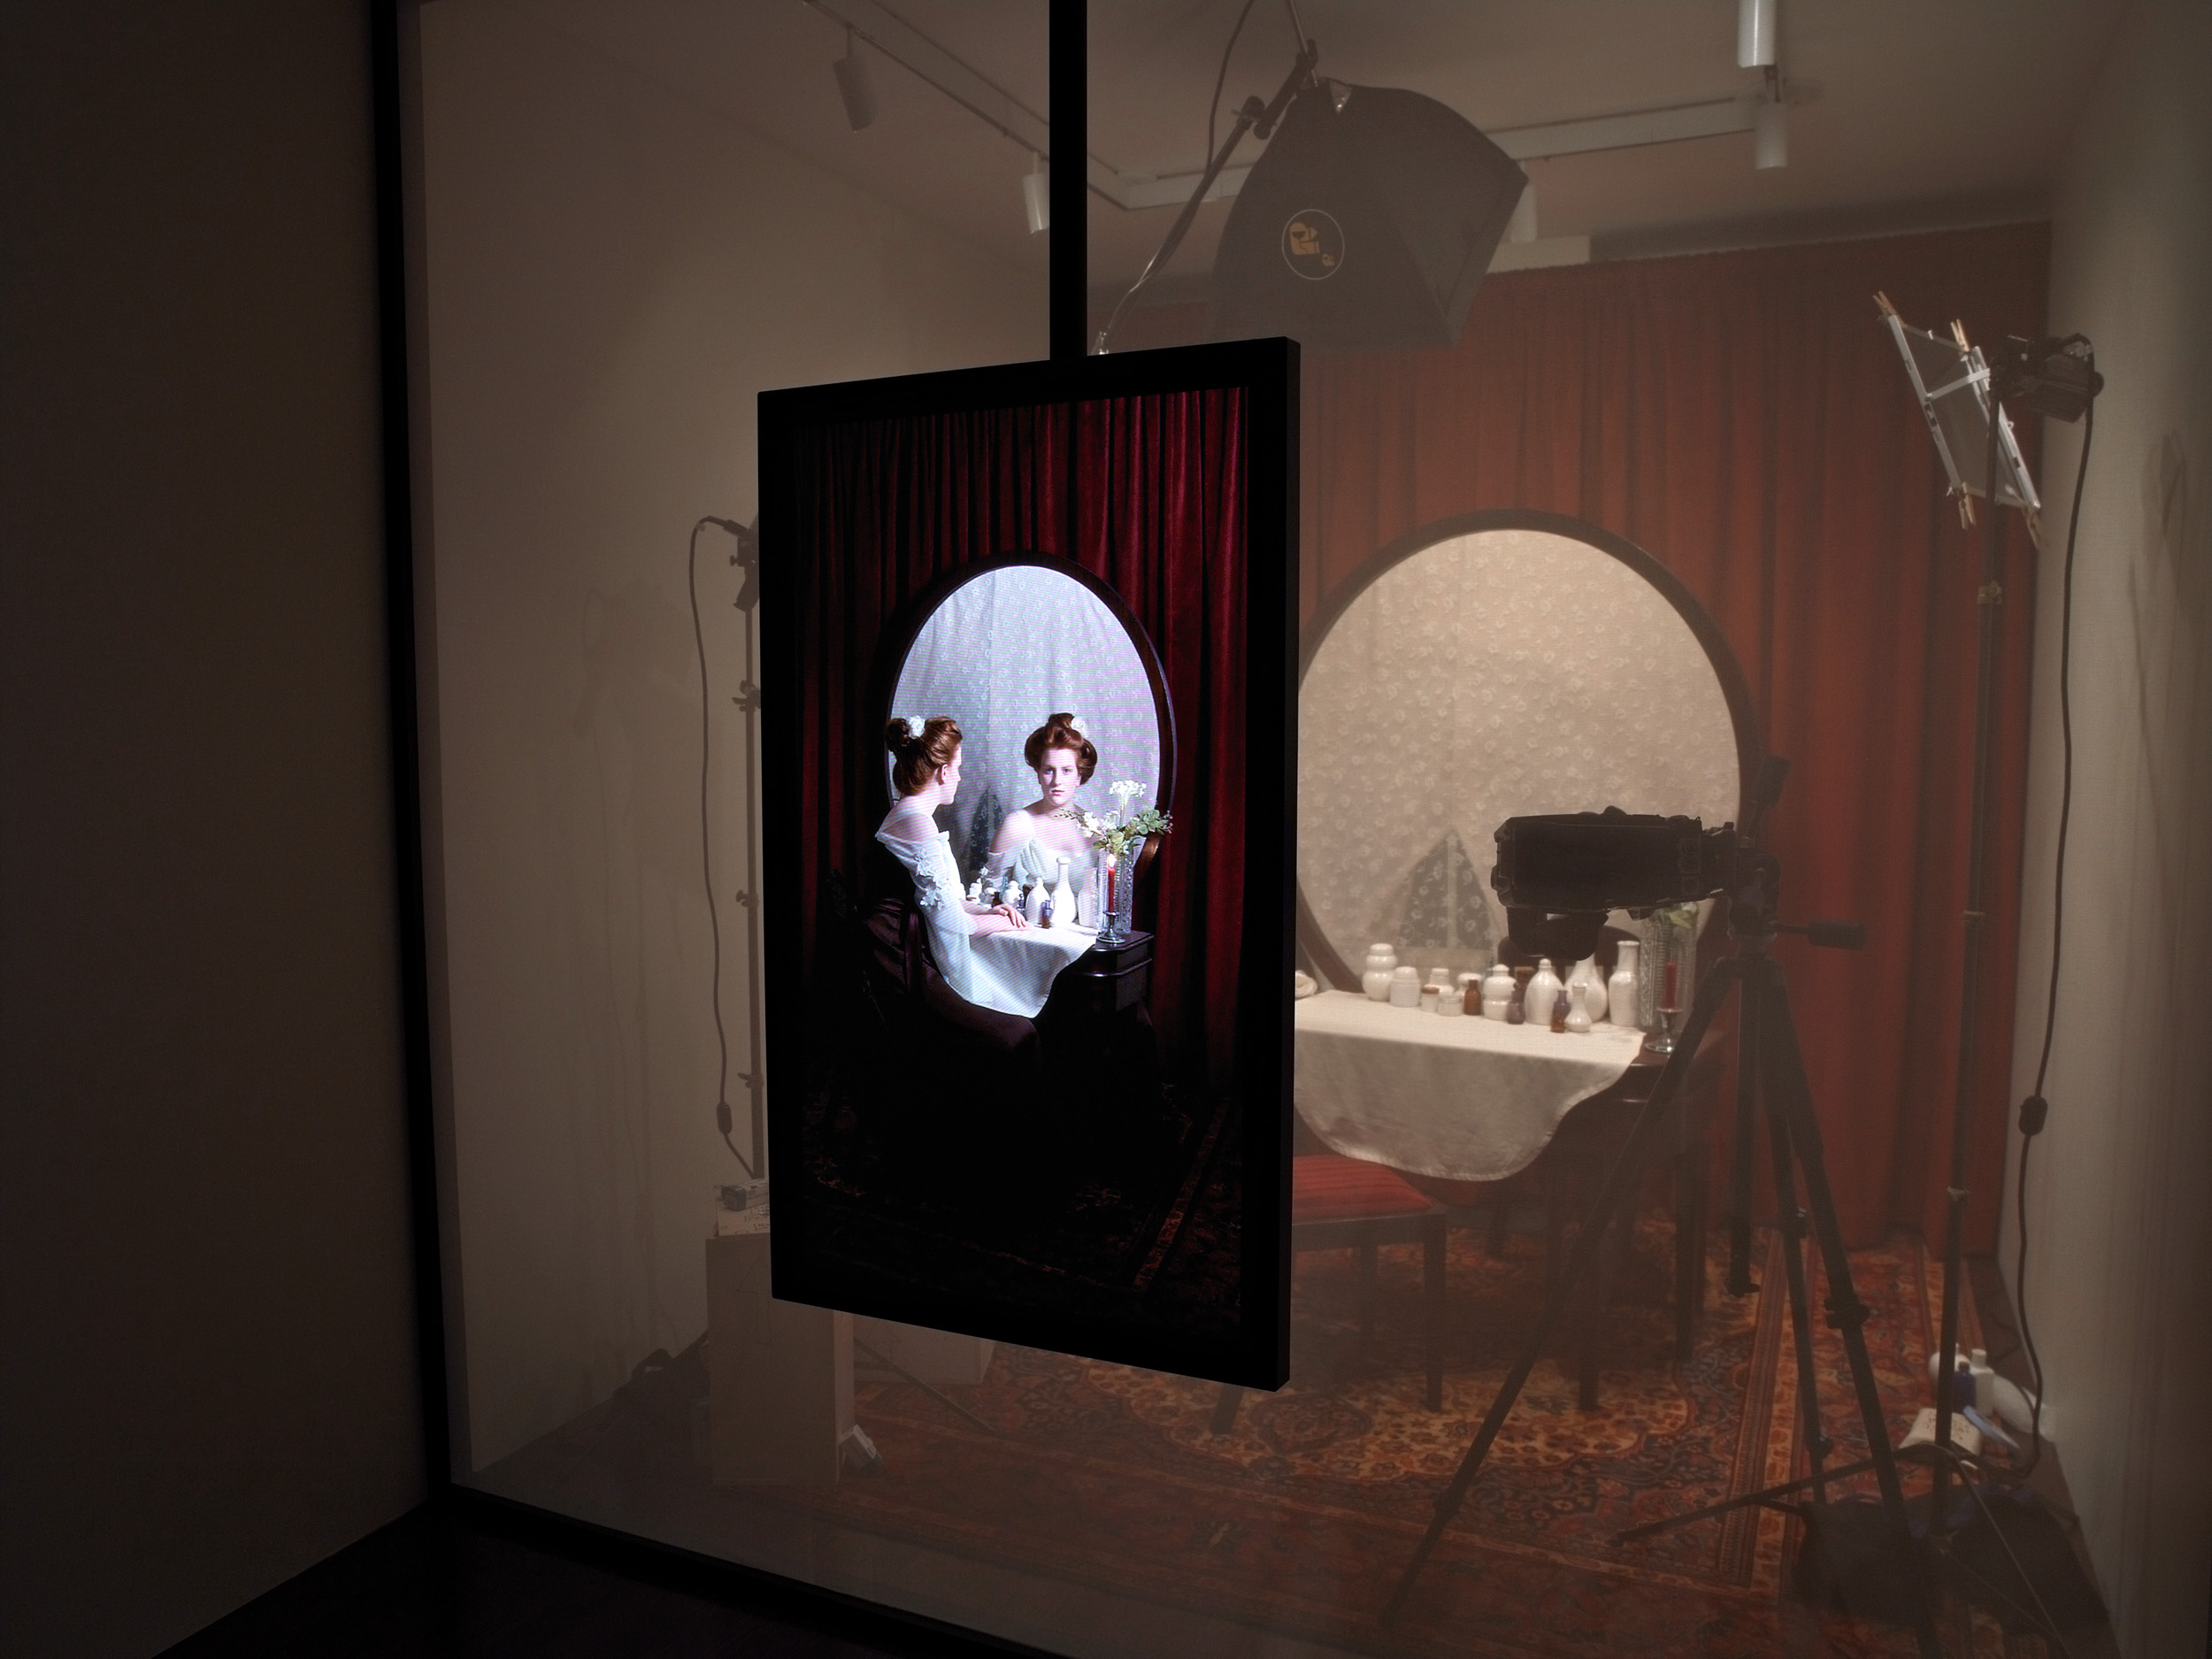 Installation view at BMO project Room, 2009